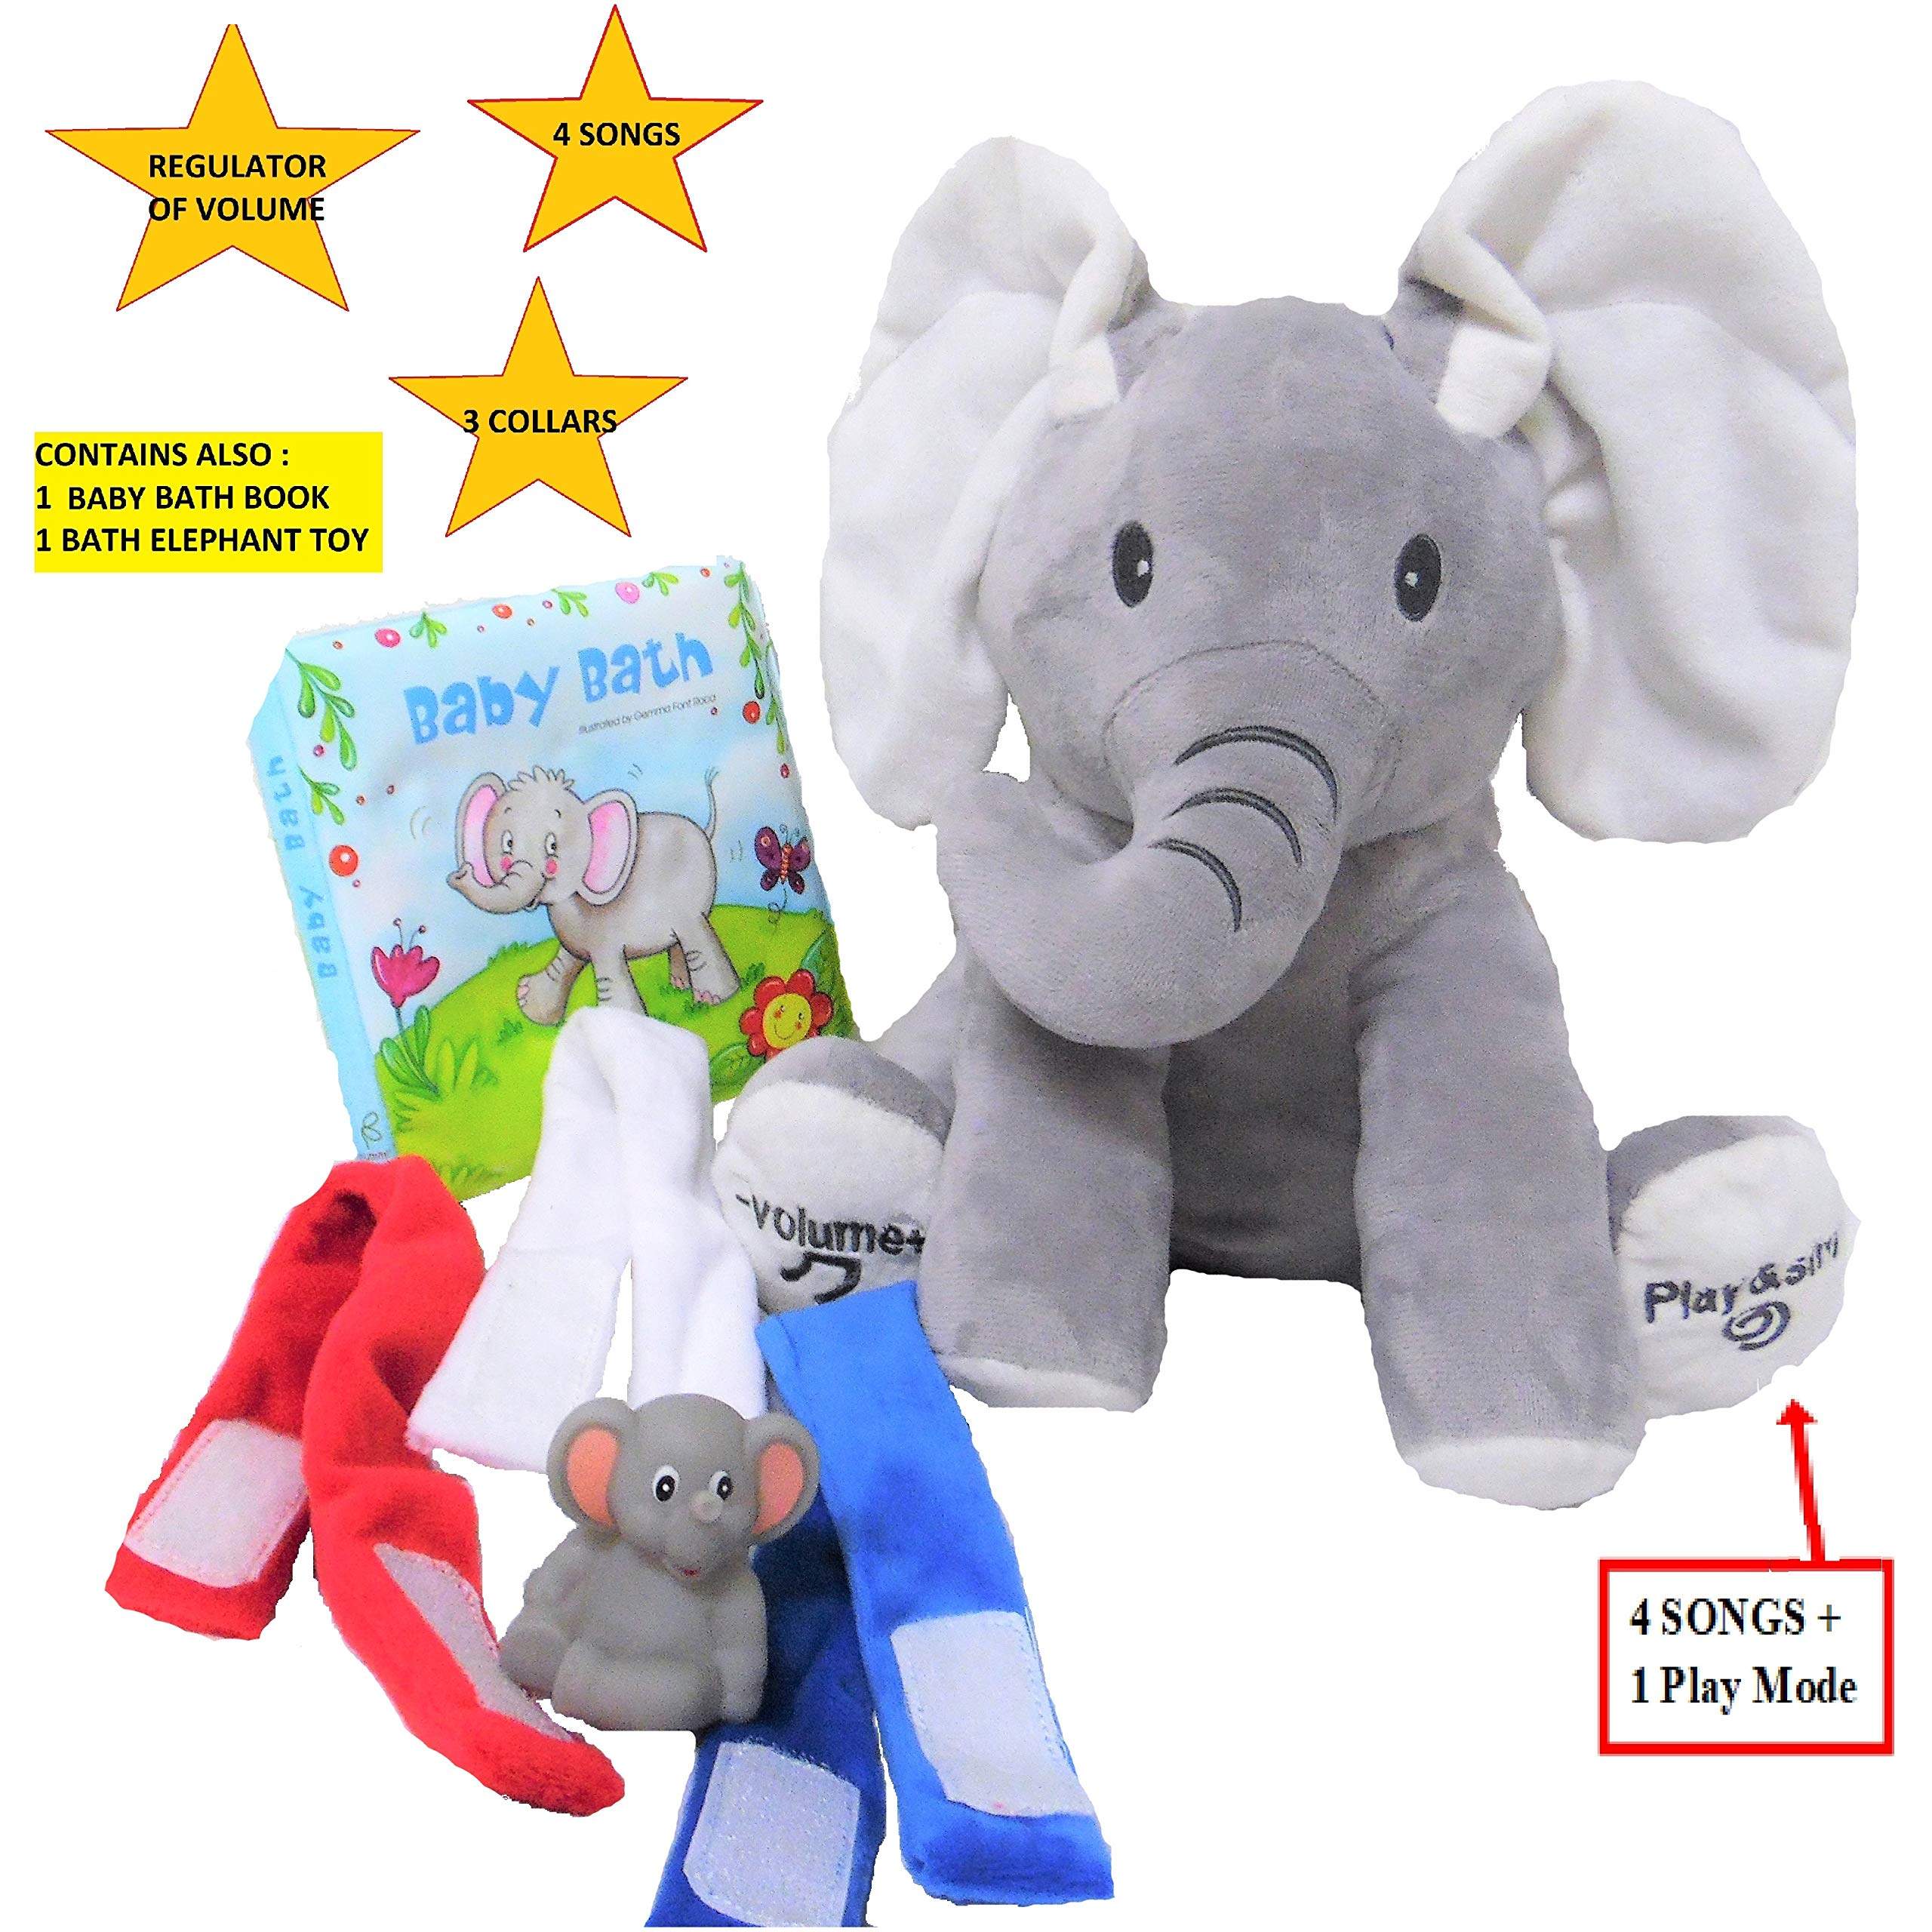 Animated Elephant Plush Toy for Boys, Girls, Kids and Baby- Cute Stuffed Animal, Doll Singing 4 Songs, with Regulator of Volume and 3 Collars; Bonus: 1 Elephant Bath Book + 1 Little Elephant Bath Toy by KIDIGREAT